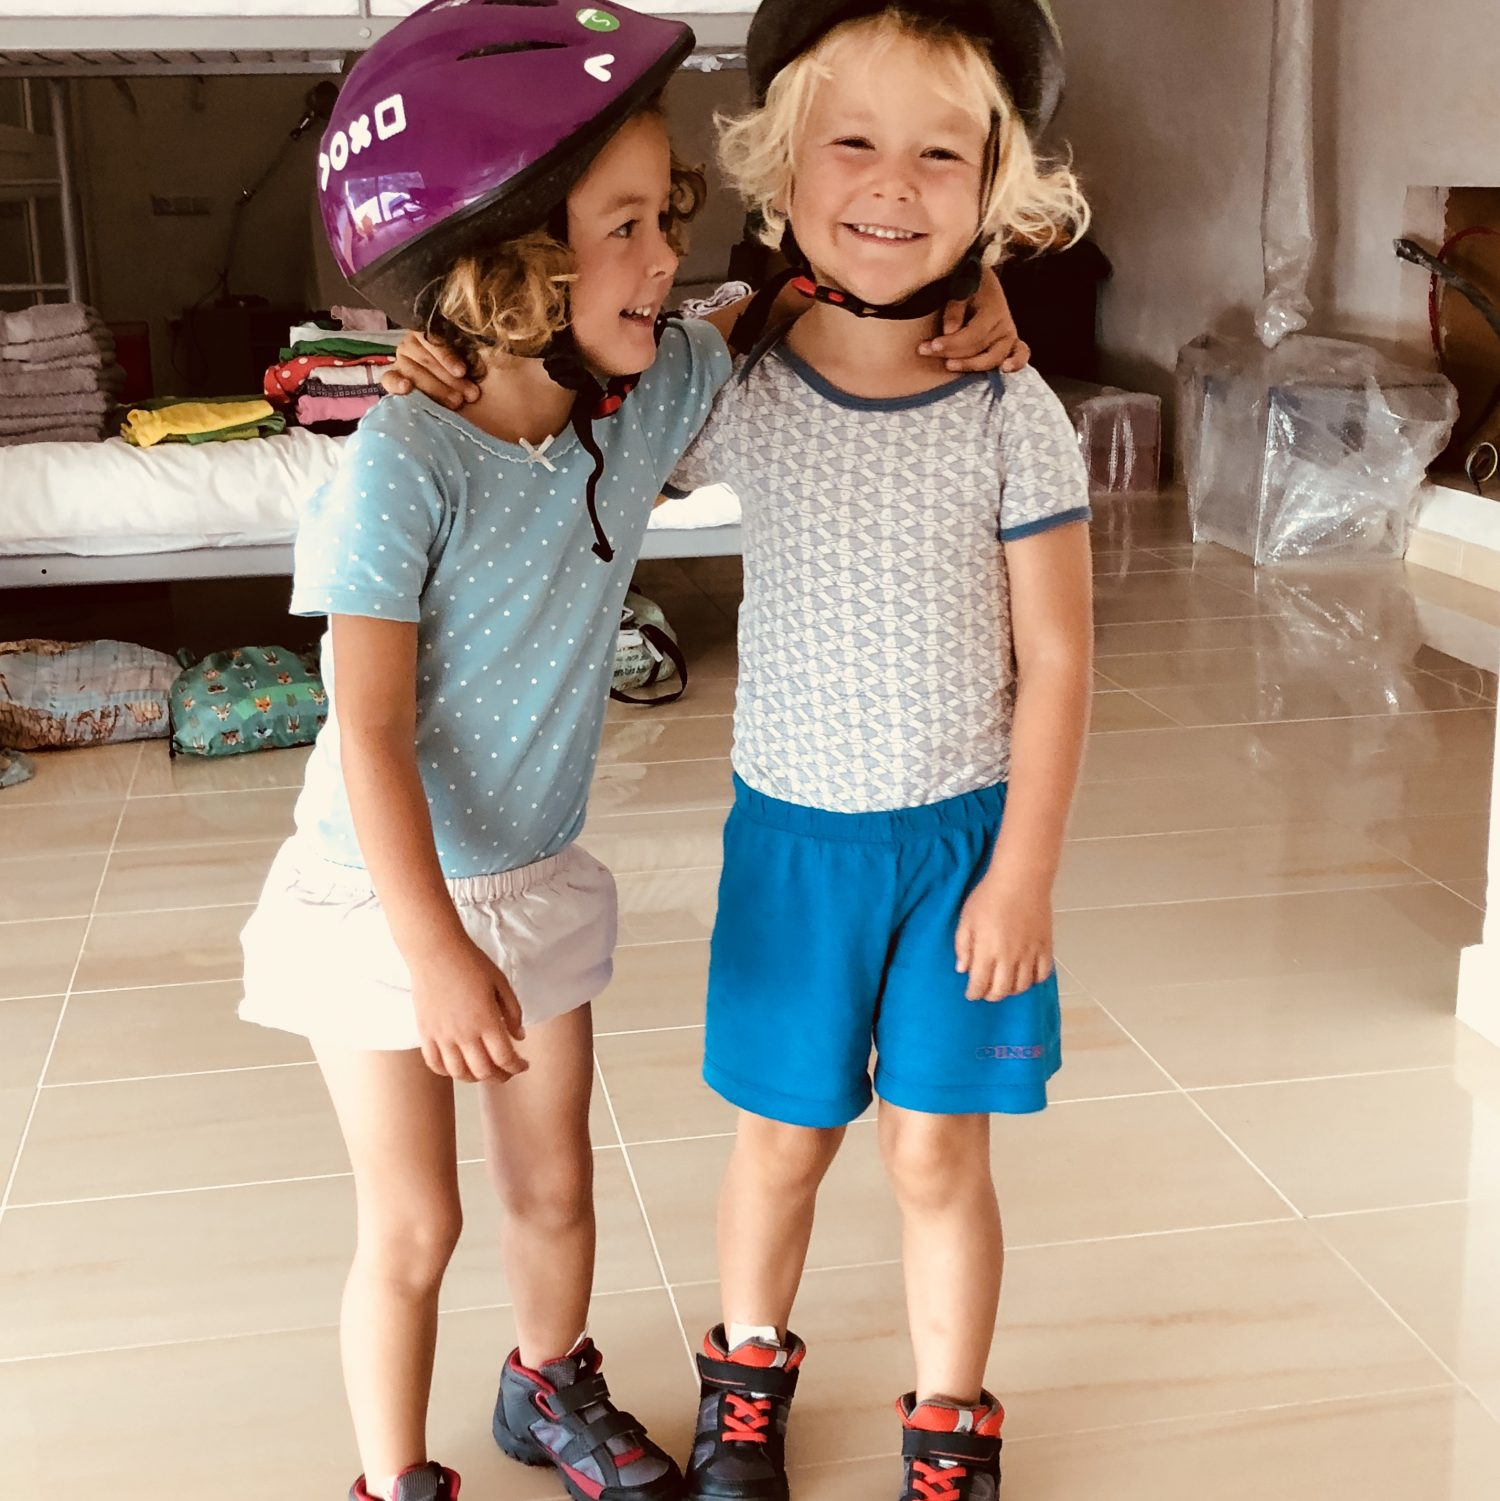 Expedition Family Happiness - Super happy with new shoes and helmets! Now we can Hike and bike!